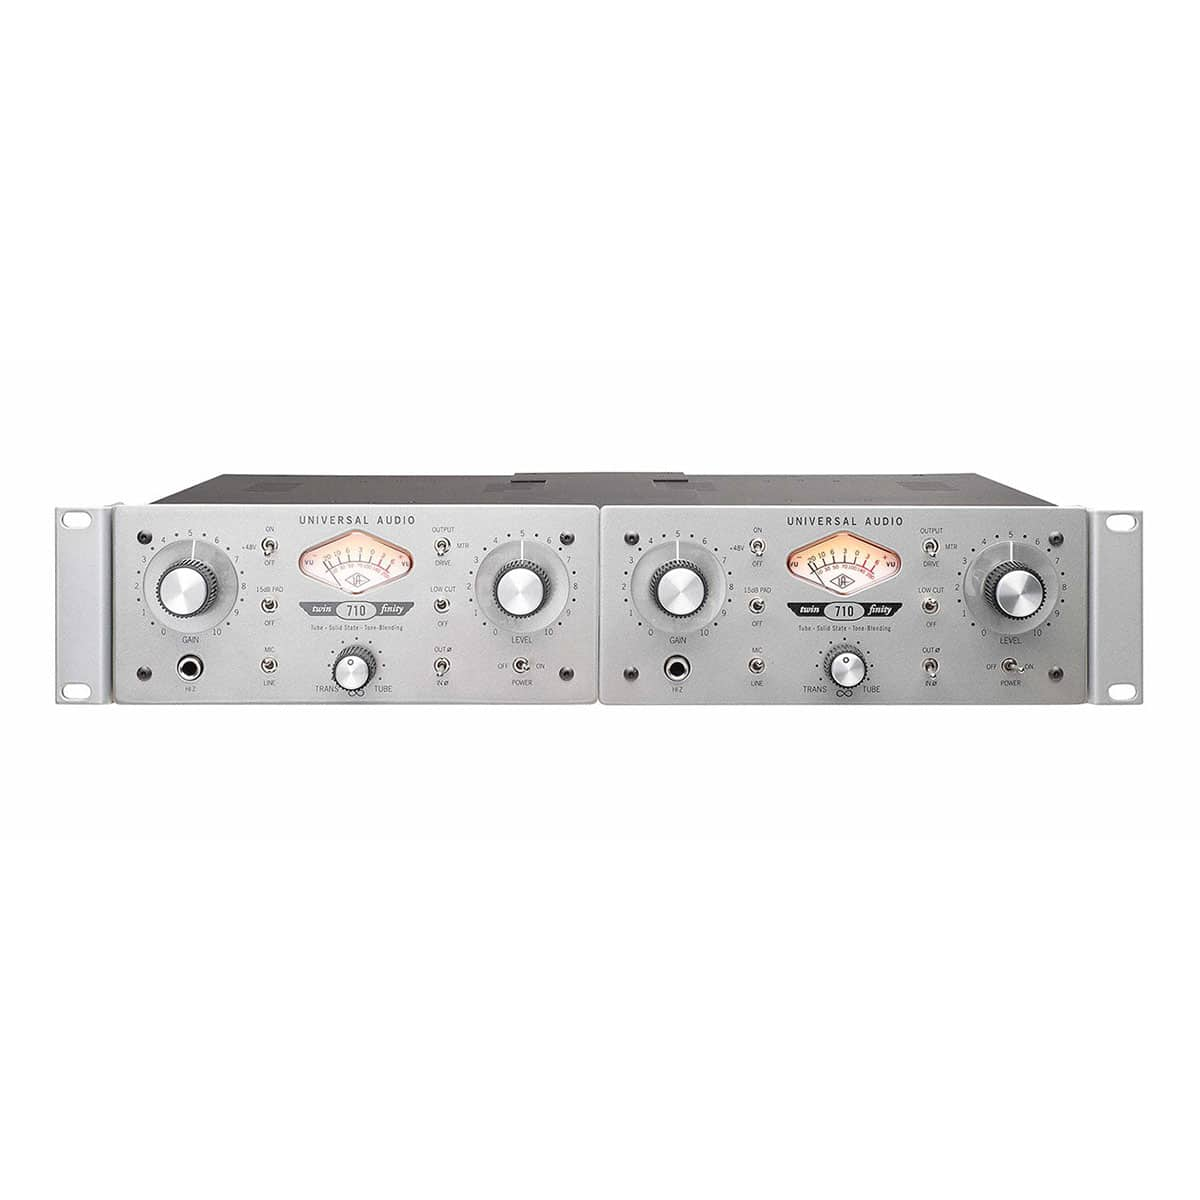 Universal Audio 710 twinfinity 04 Pro Audio, Outboard, Preamplificatori Microfonici, D.I./Reamp